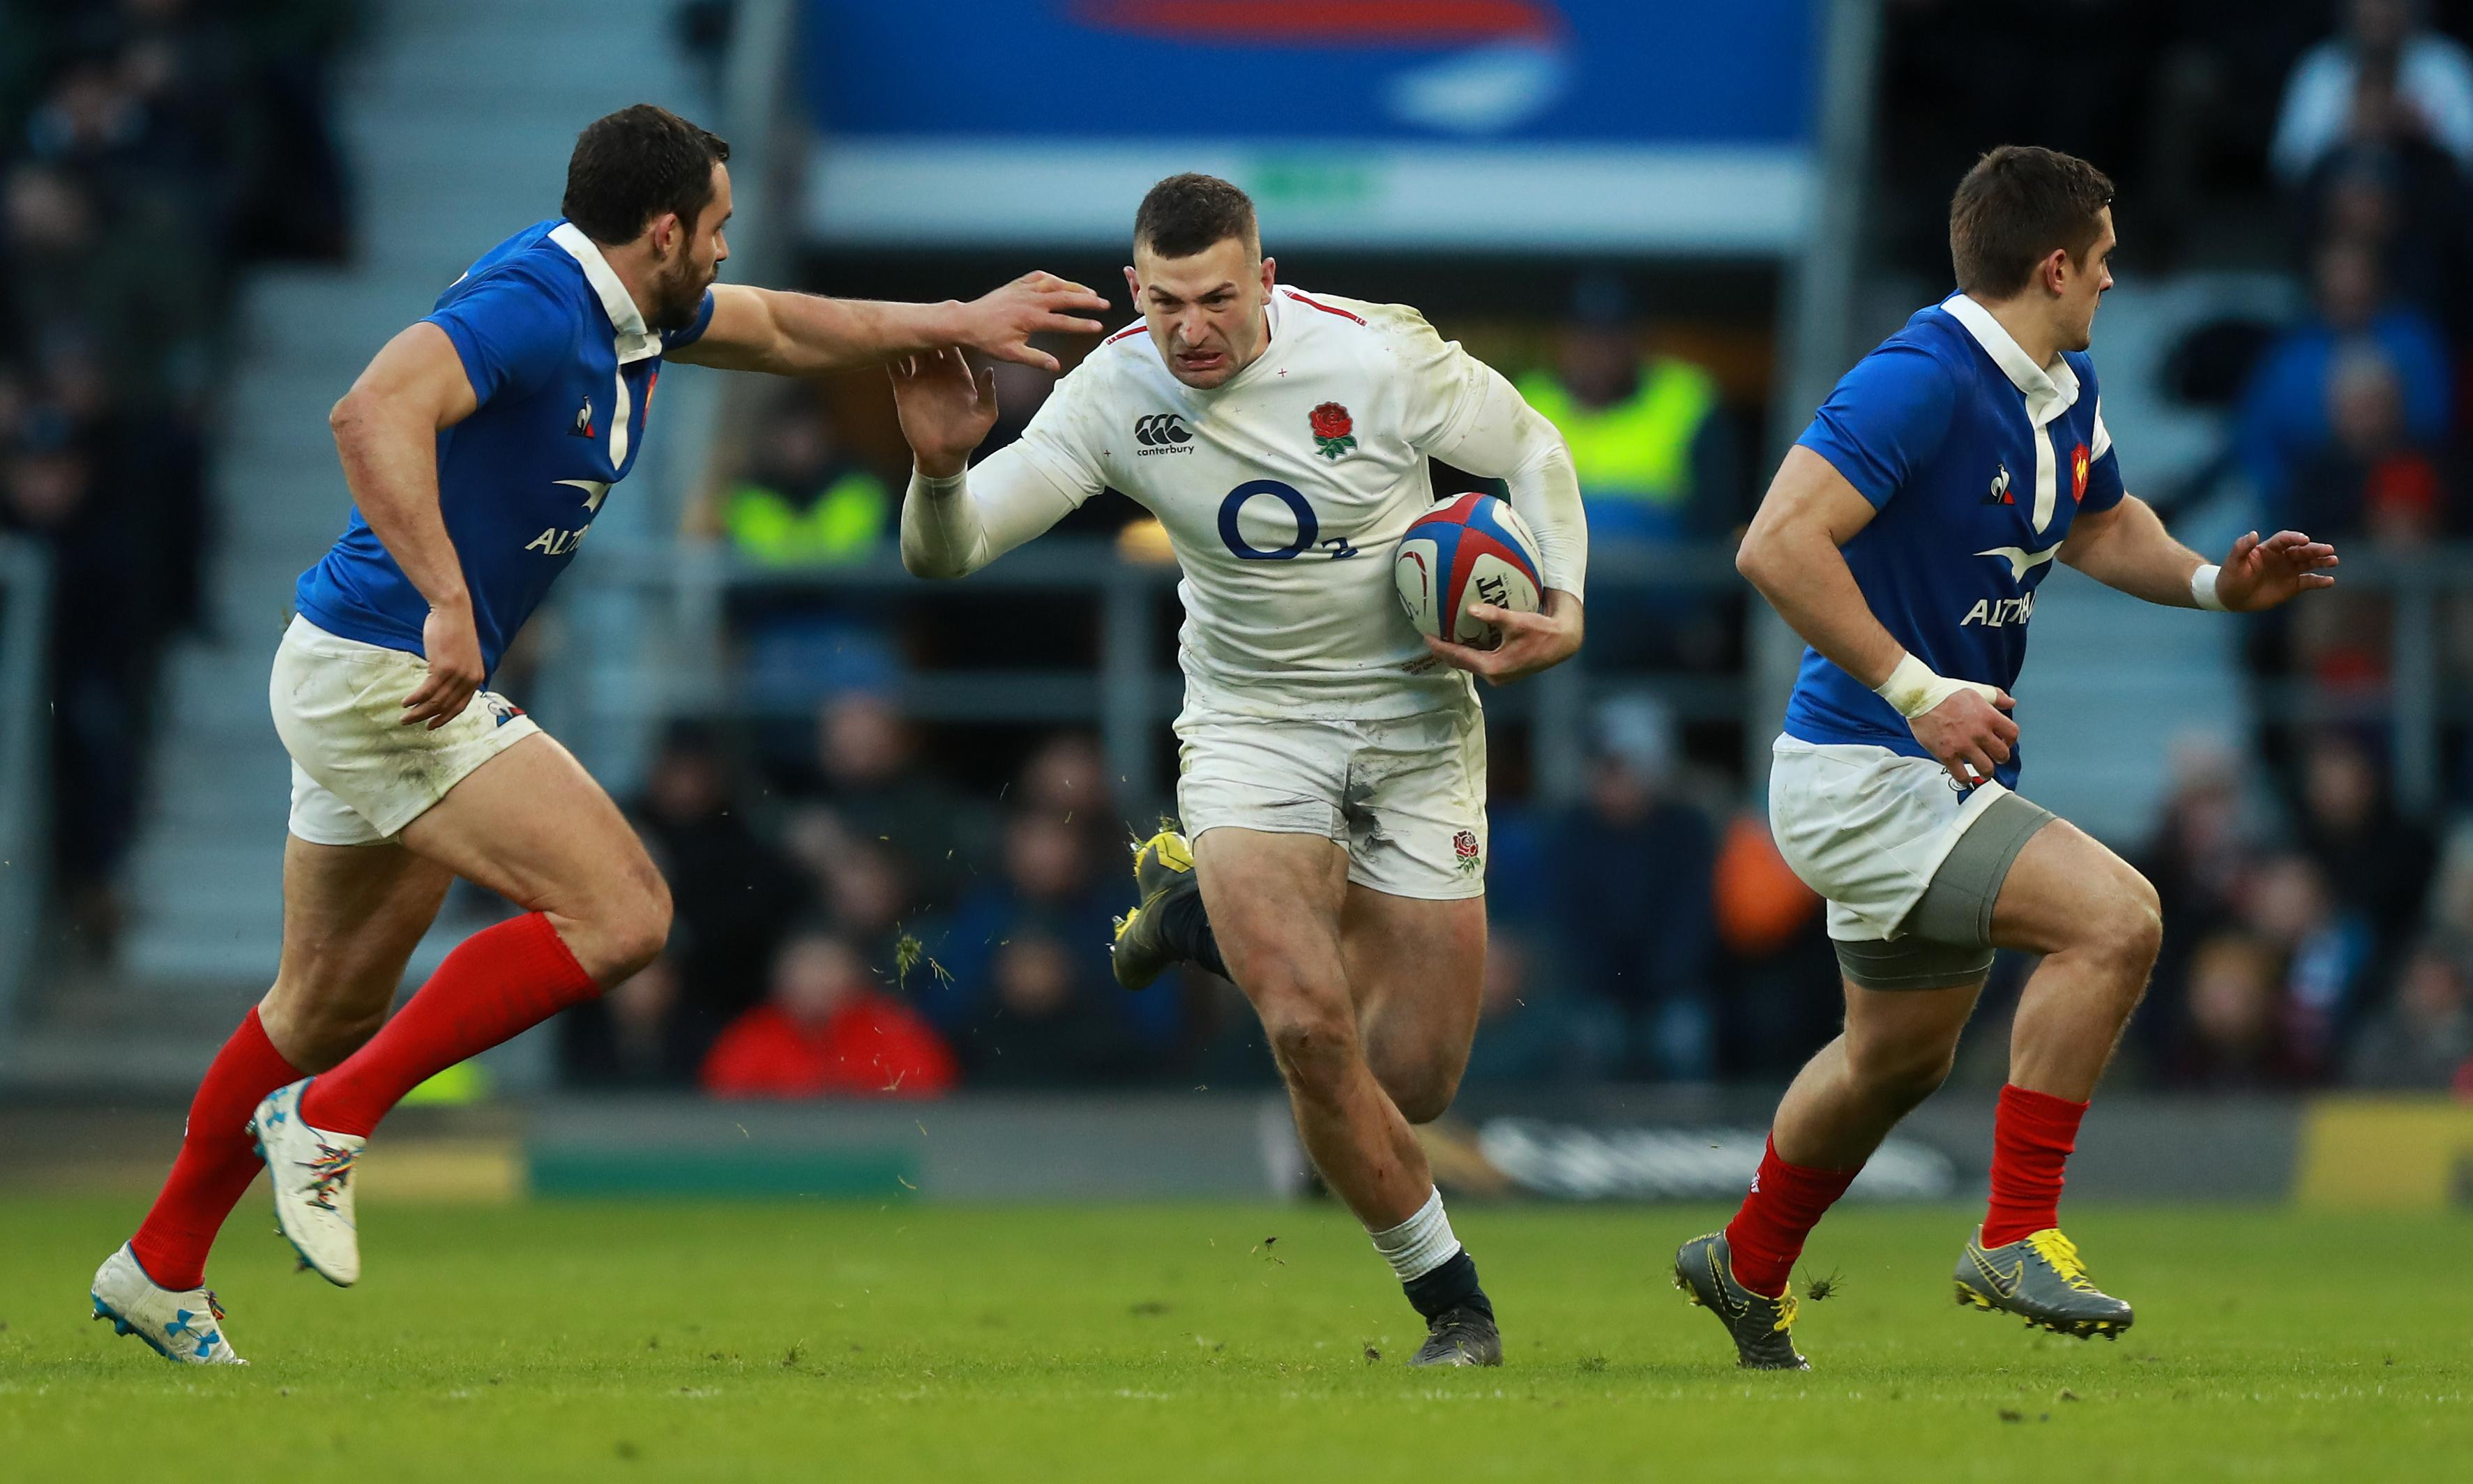 My form is having a mental effect on England's opponents, says Jonny May